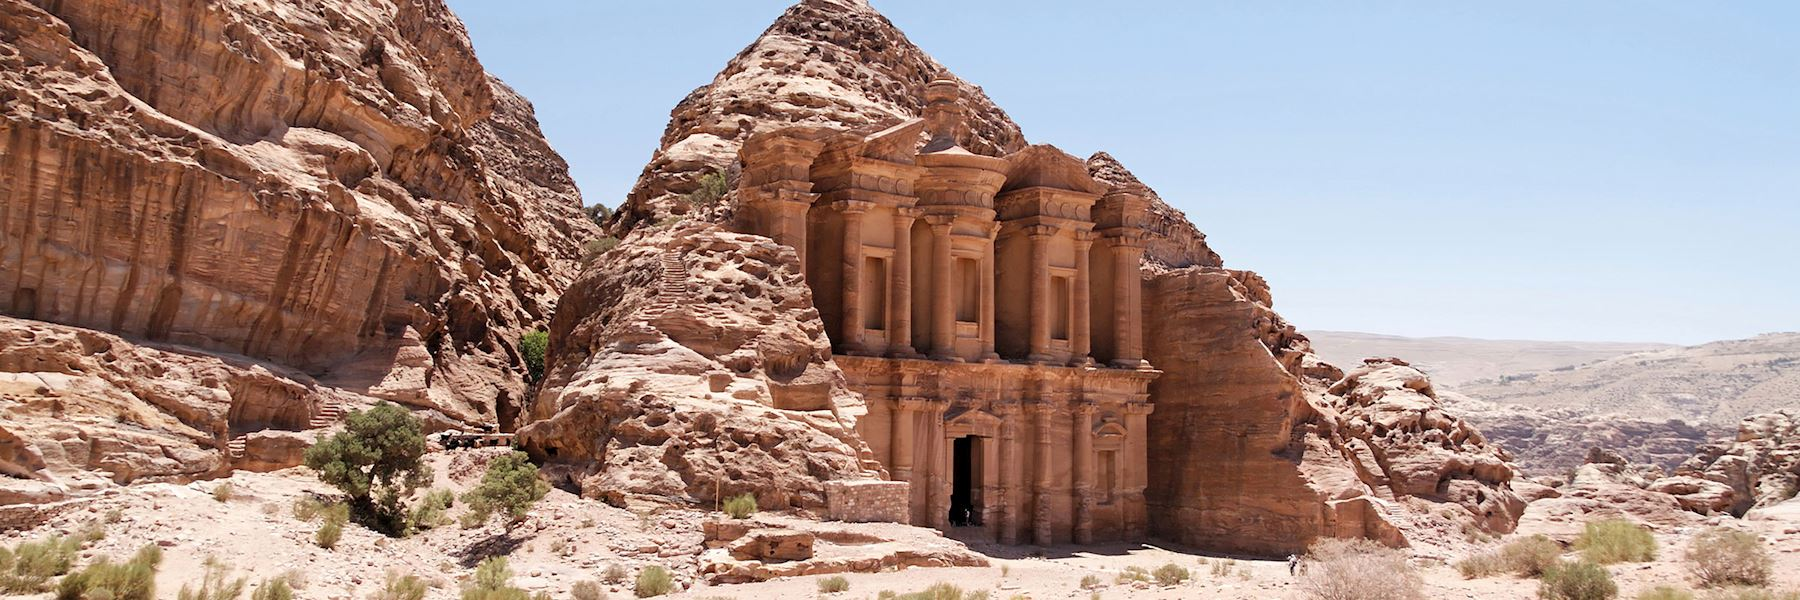 Experts in tailor-made vacations to North Africa & the Middle East